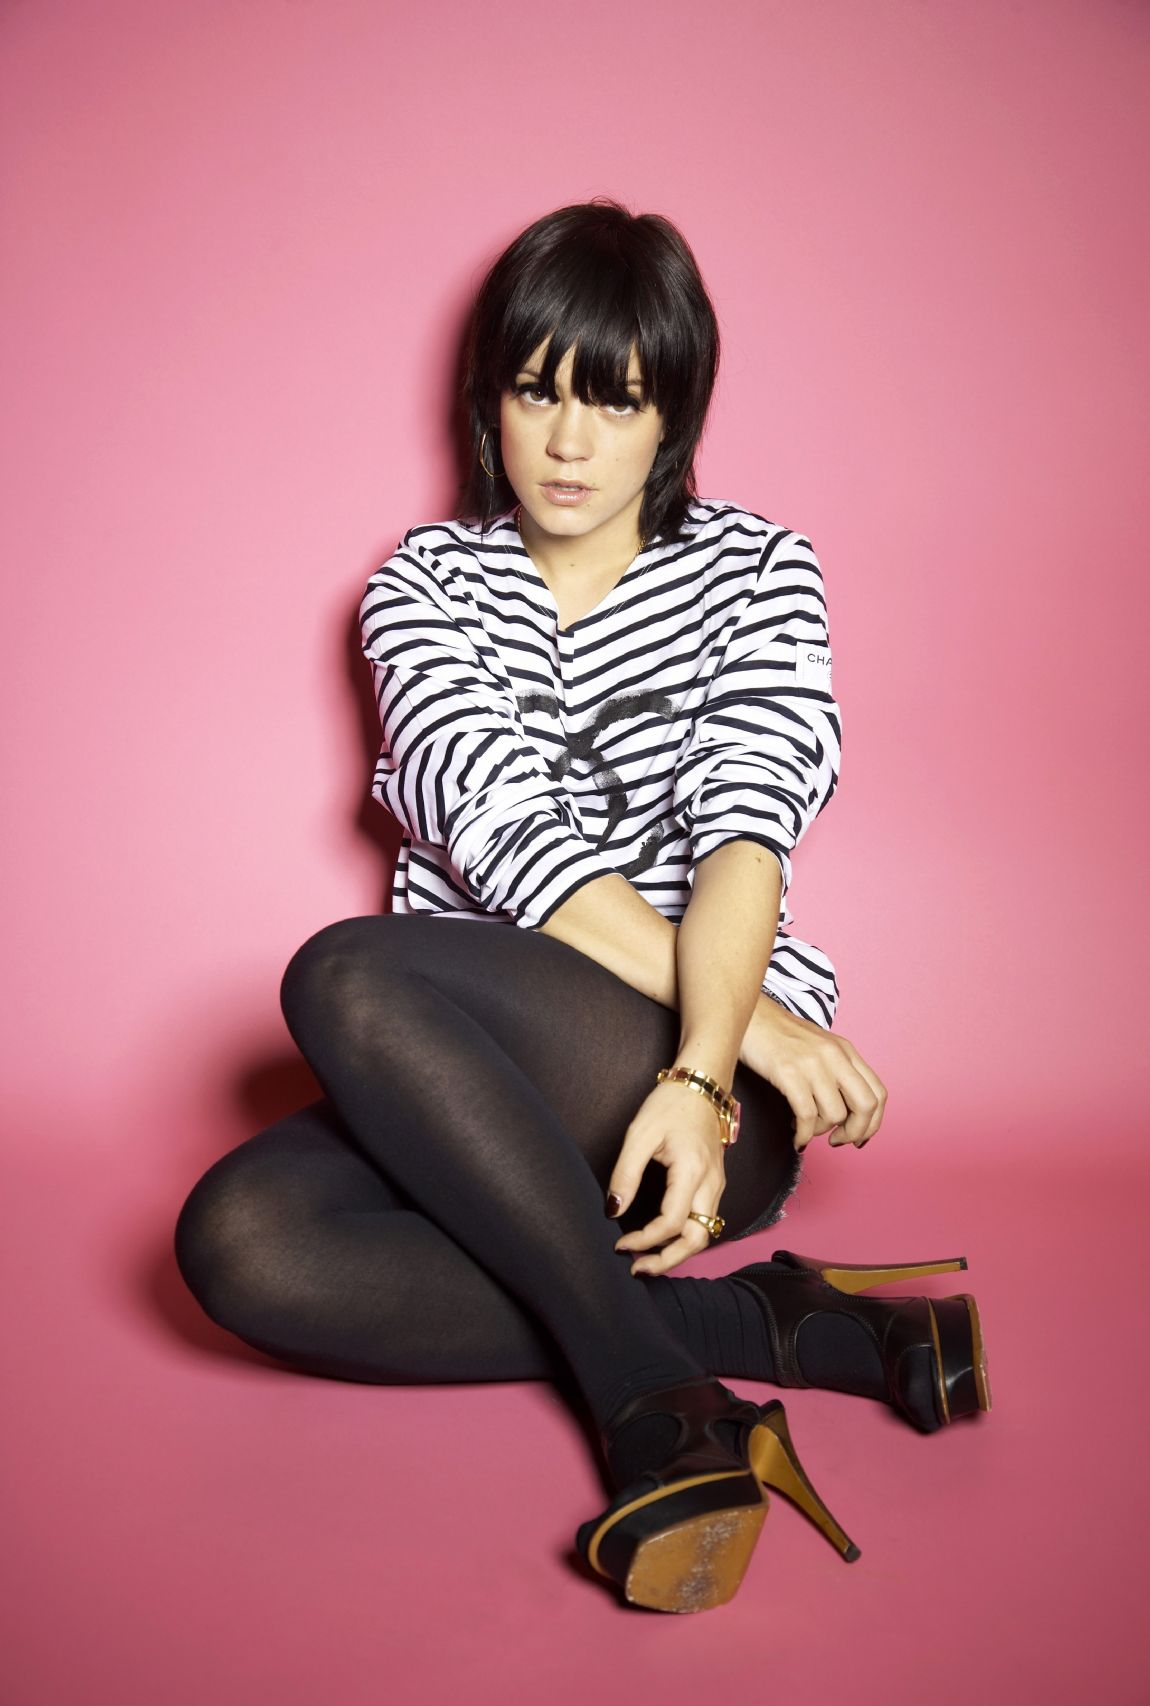 Lily Allen Photo 69 Of 257 Pics Wallpaper Photo 196438